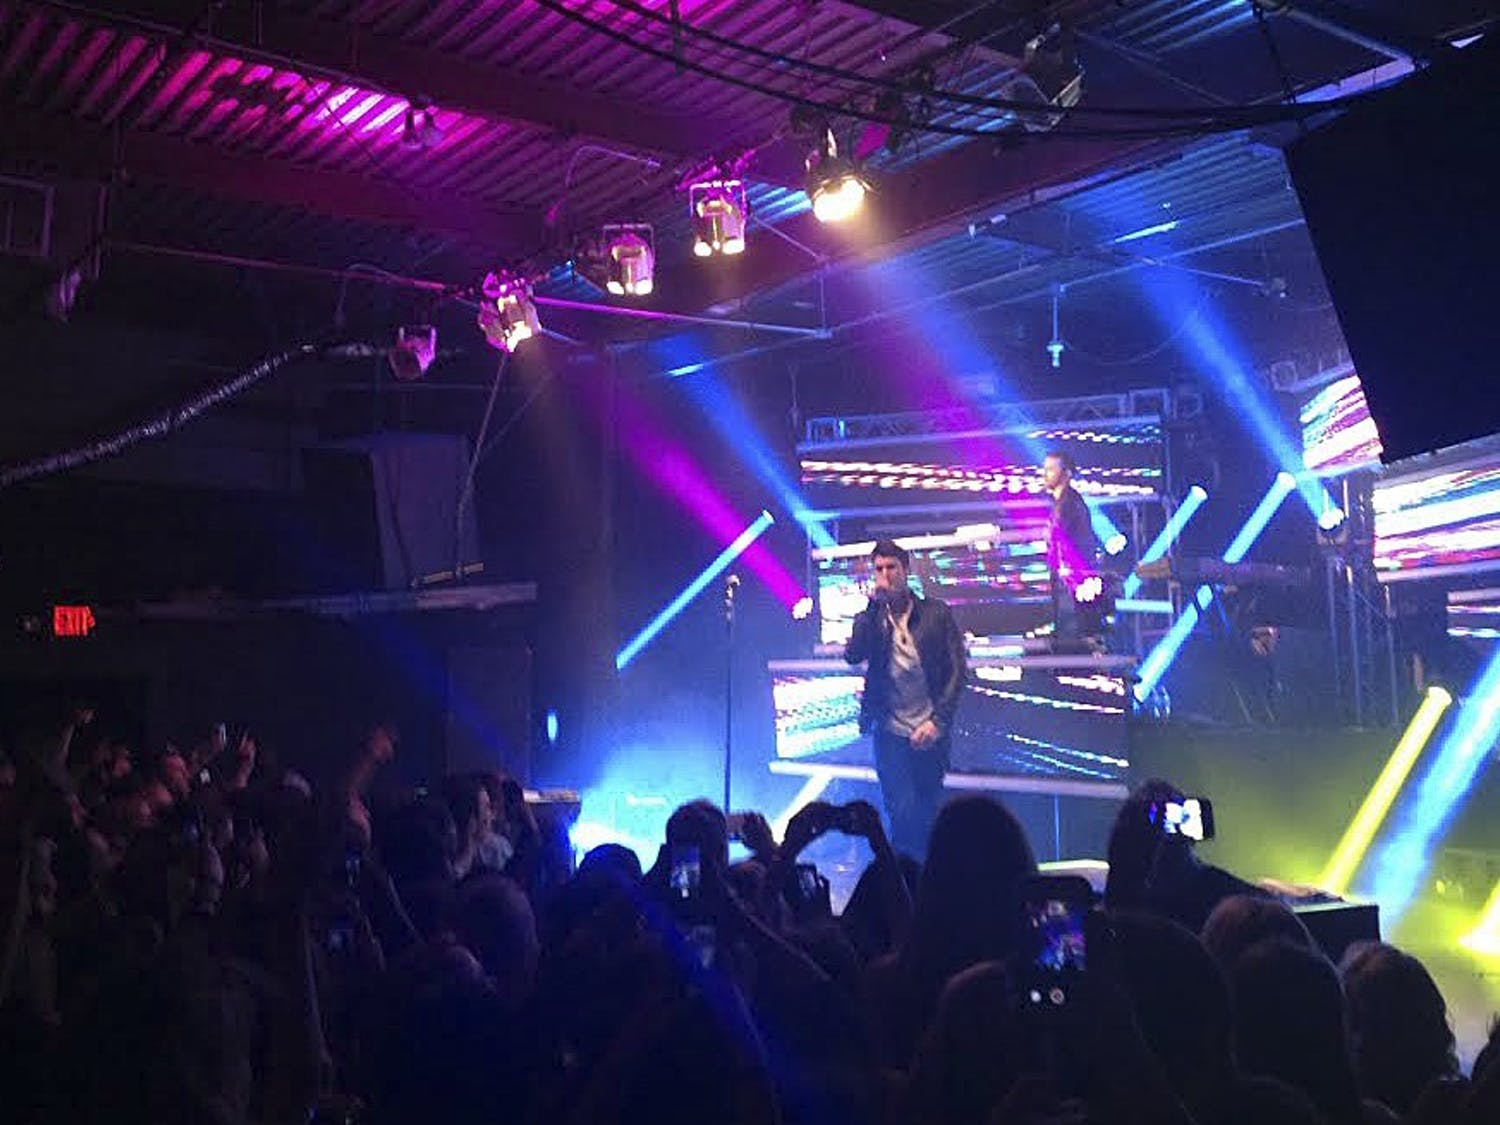 Timeflies, a music duo, sings at Cat's Cradle in Carrboro as a part of their After Hours tour. Tickets for the performance sold out.